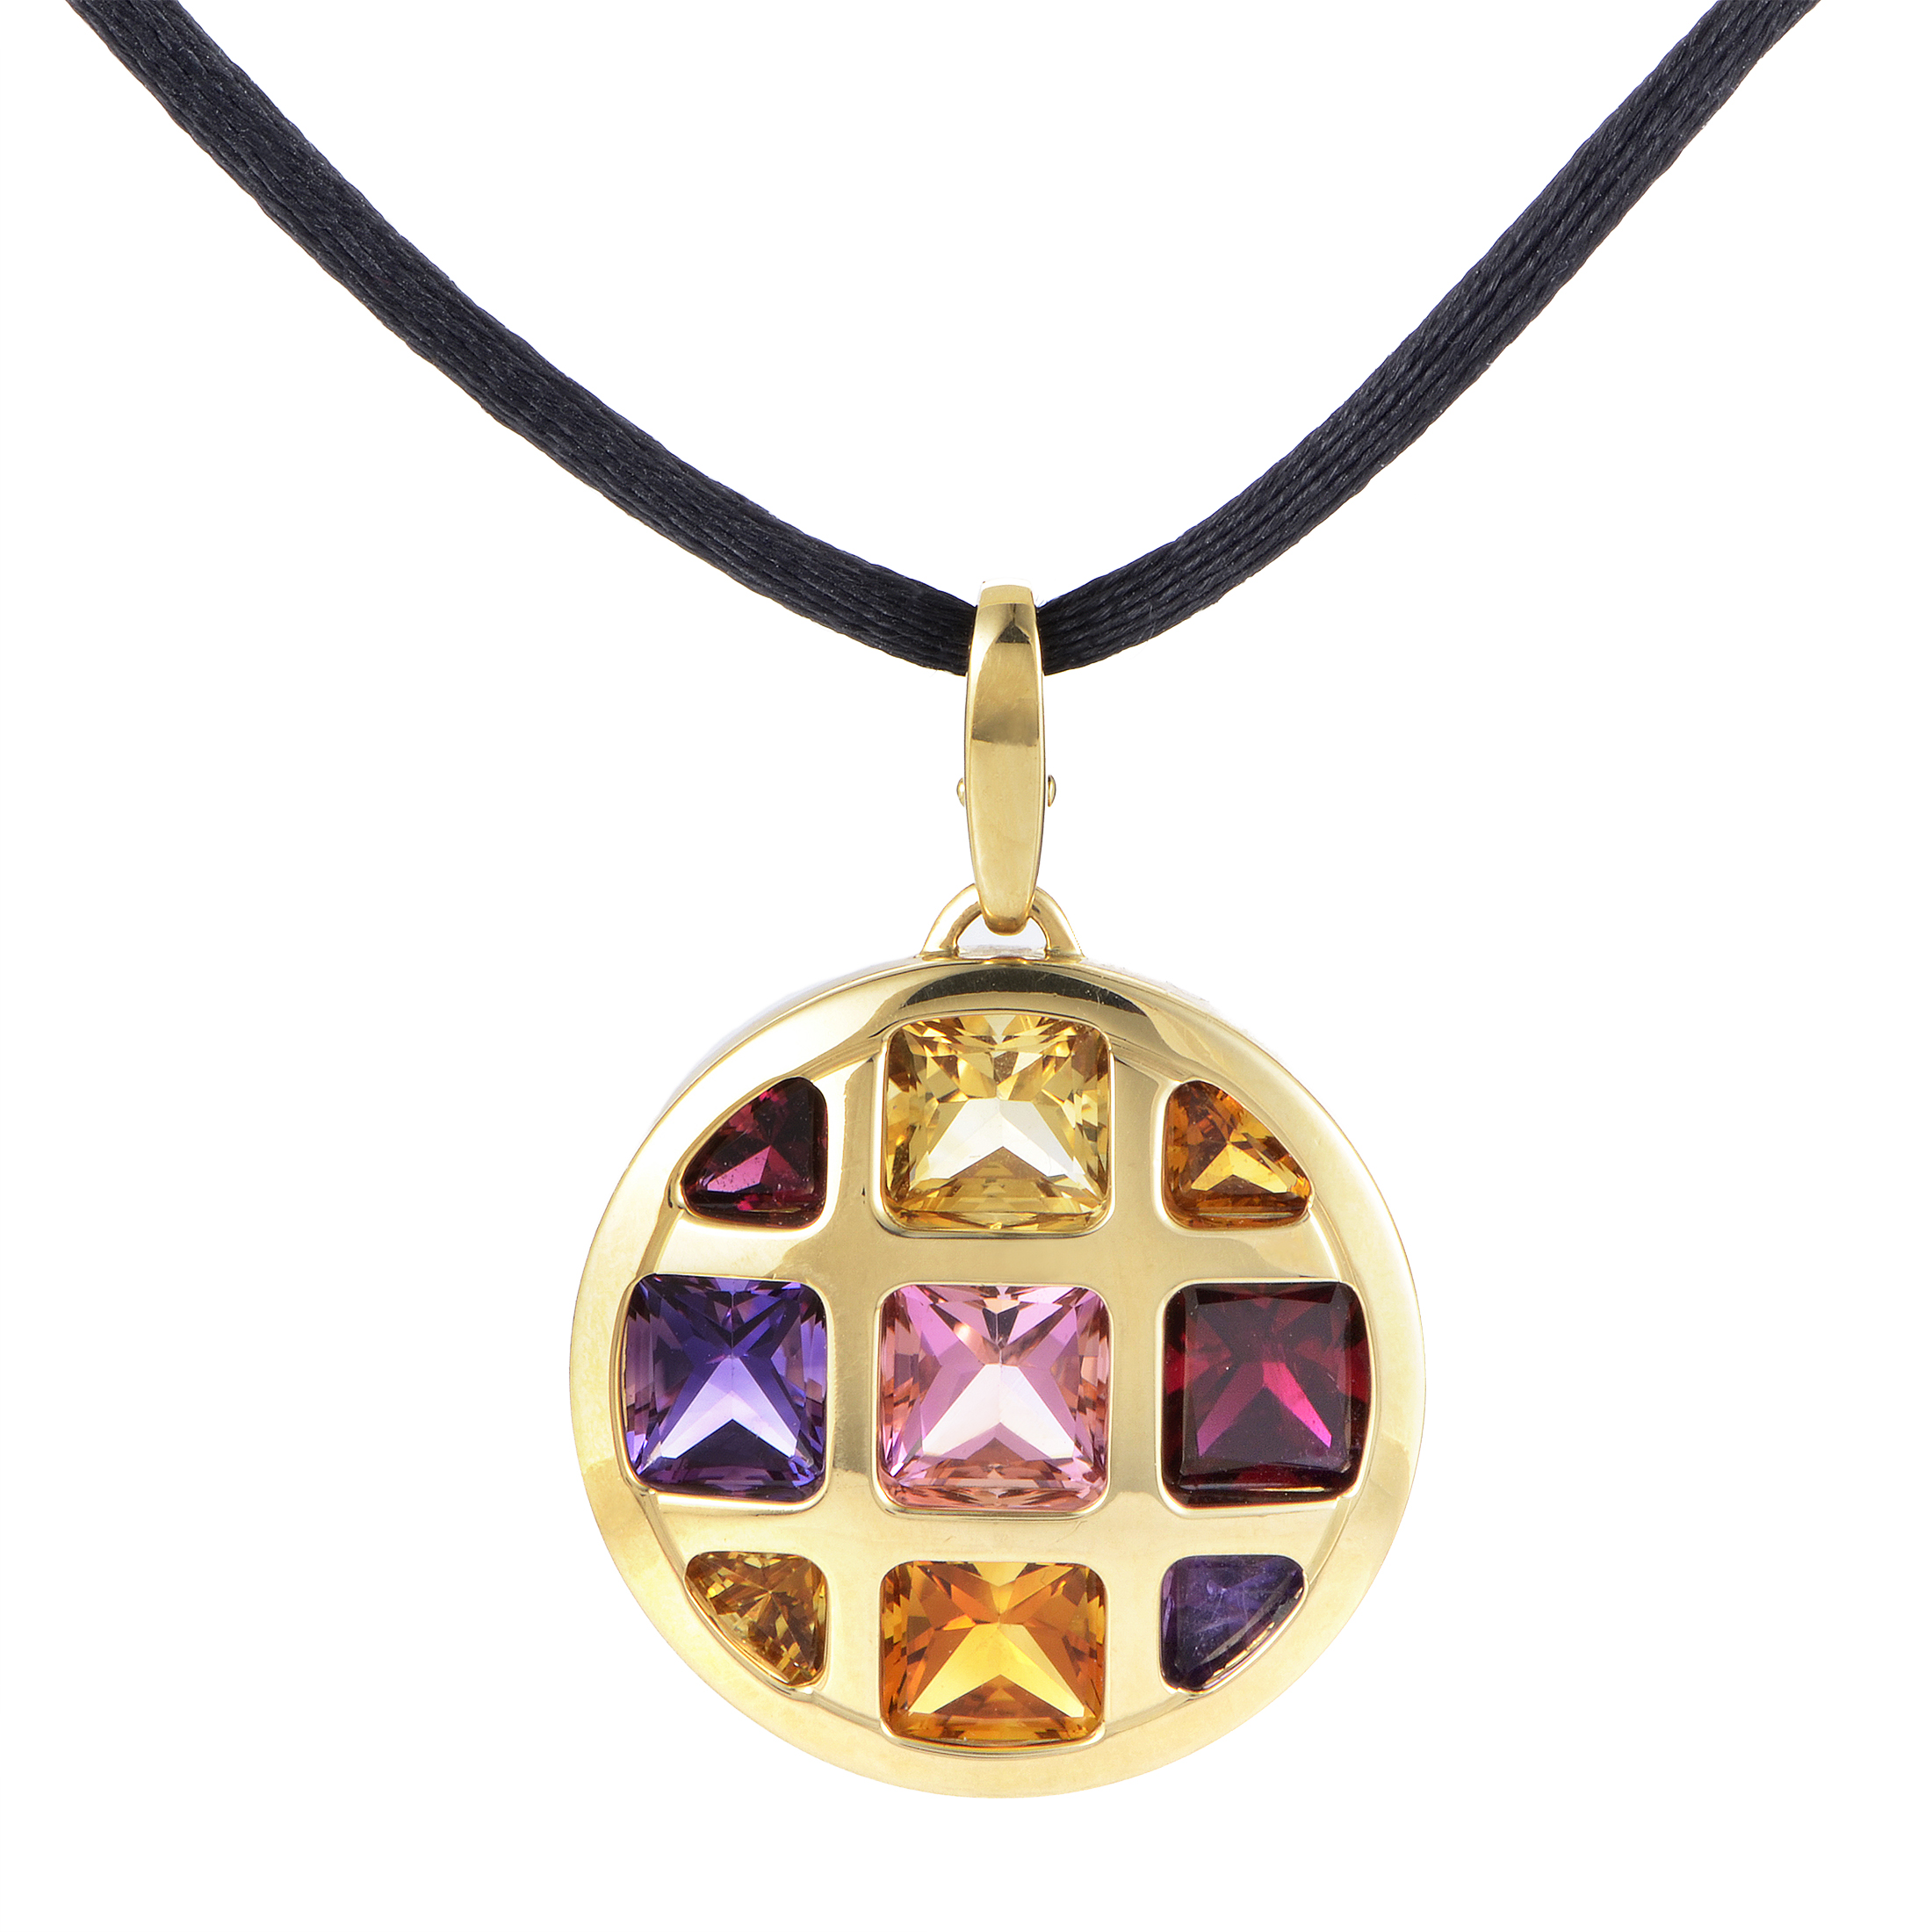 Cartier Pasha Women's 18K Yellow Gold Multi-Gemstone Pendant & Cord Necklace